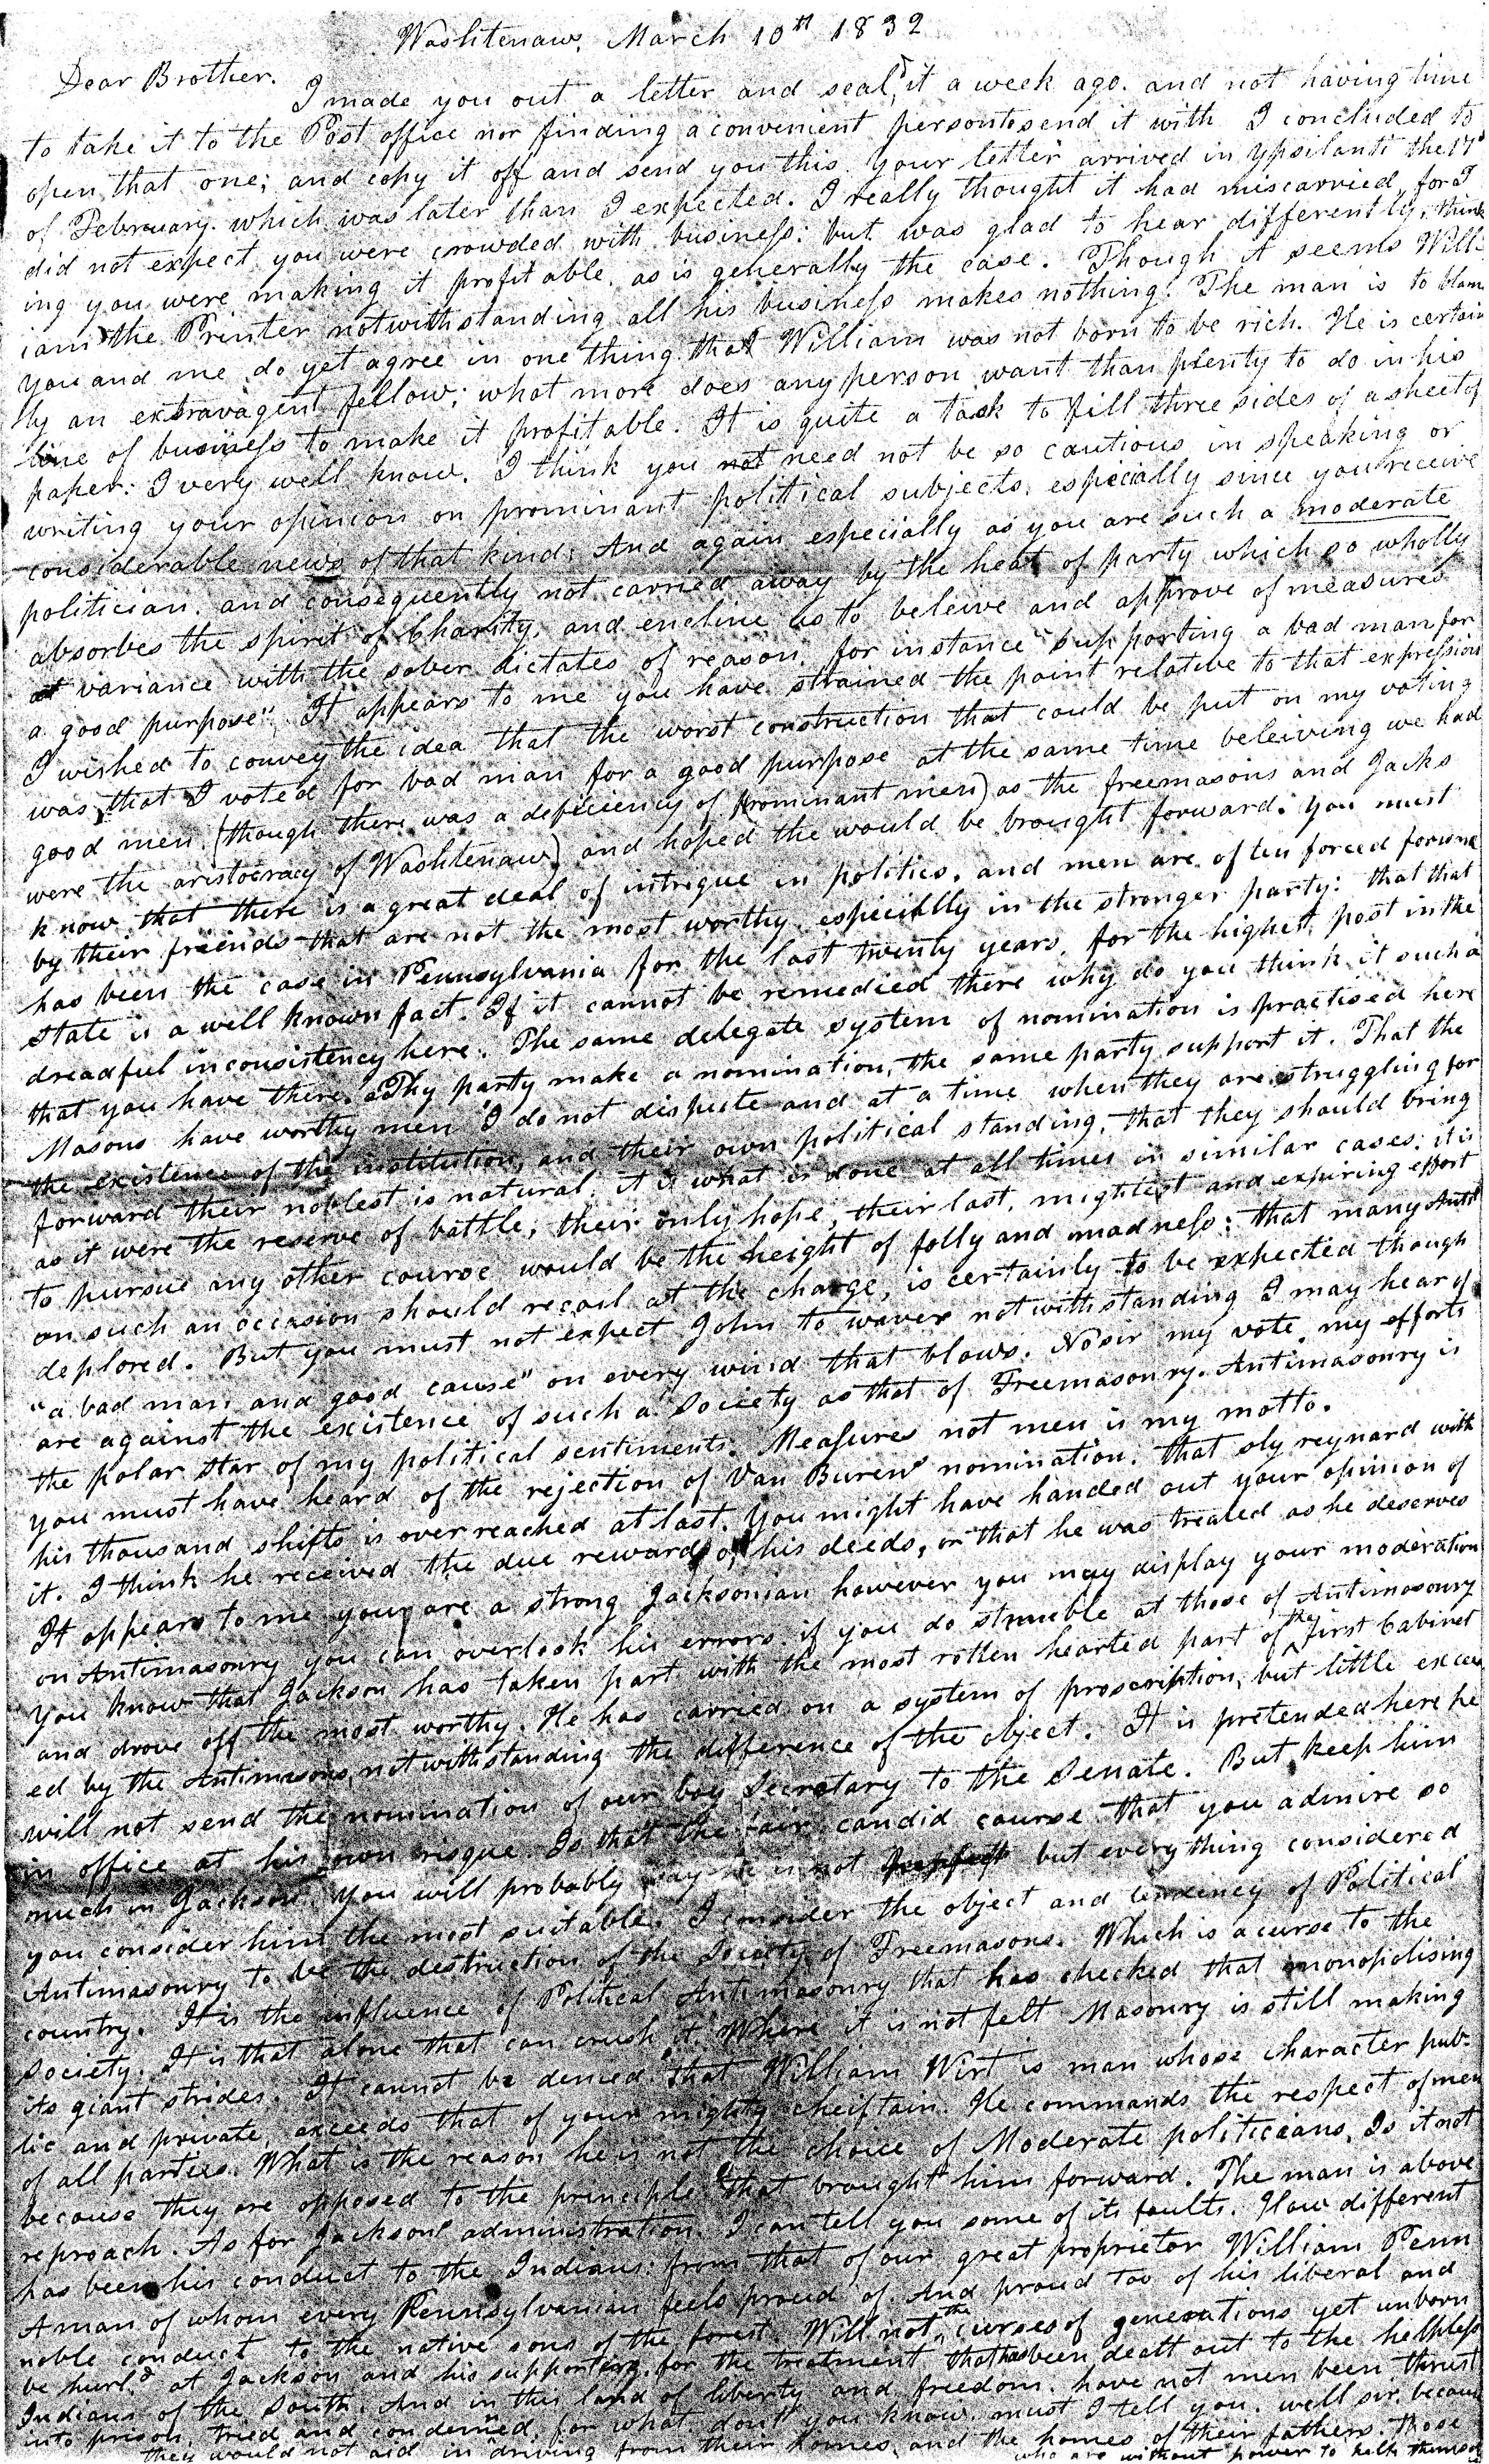 Letter From John Geddes to William Geddes, March 10, 1832 image